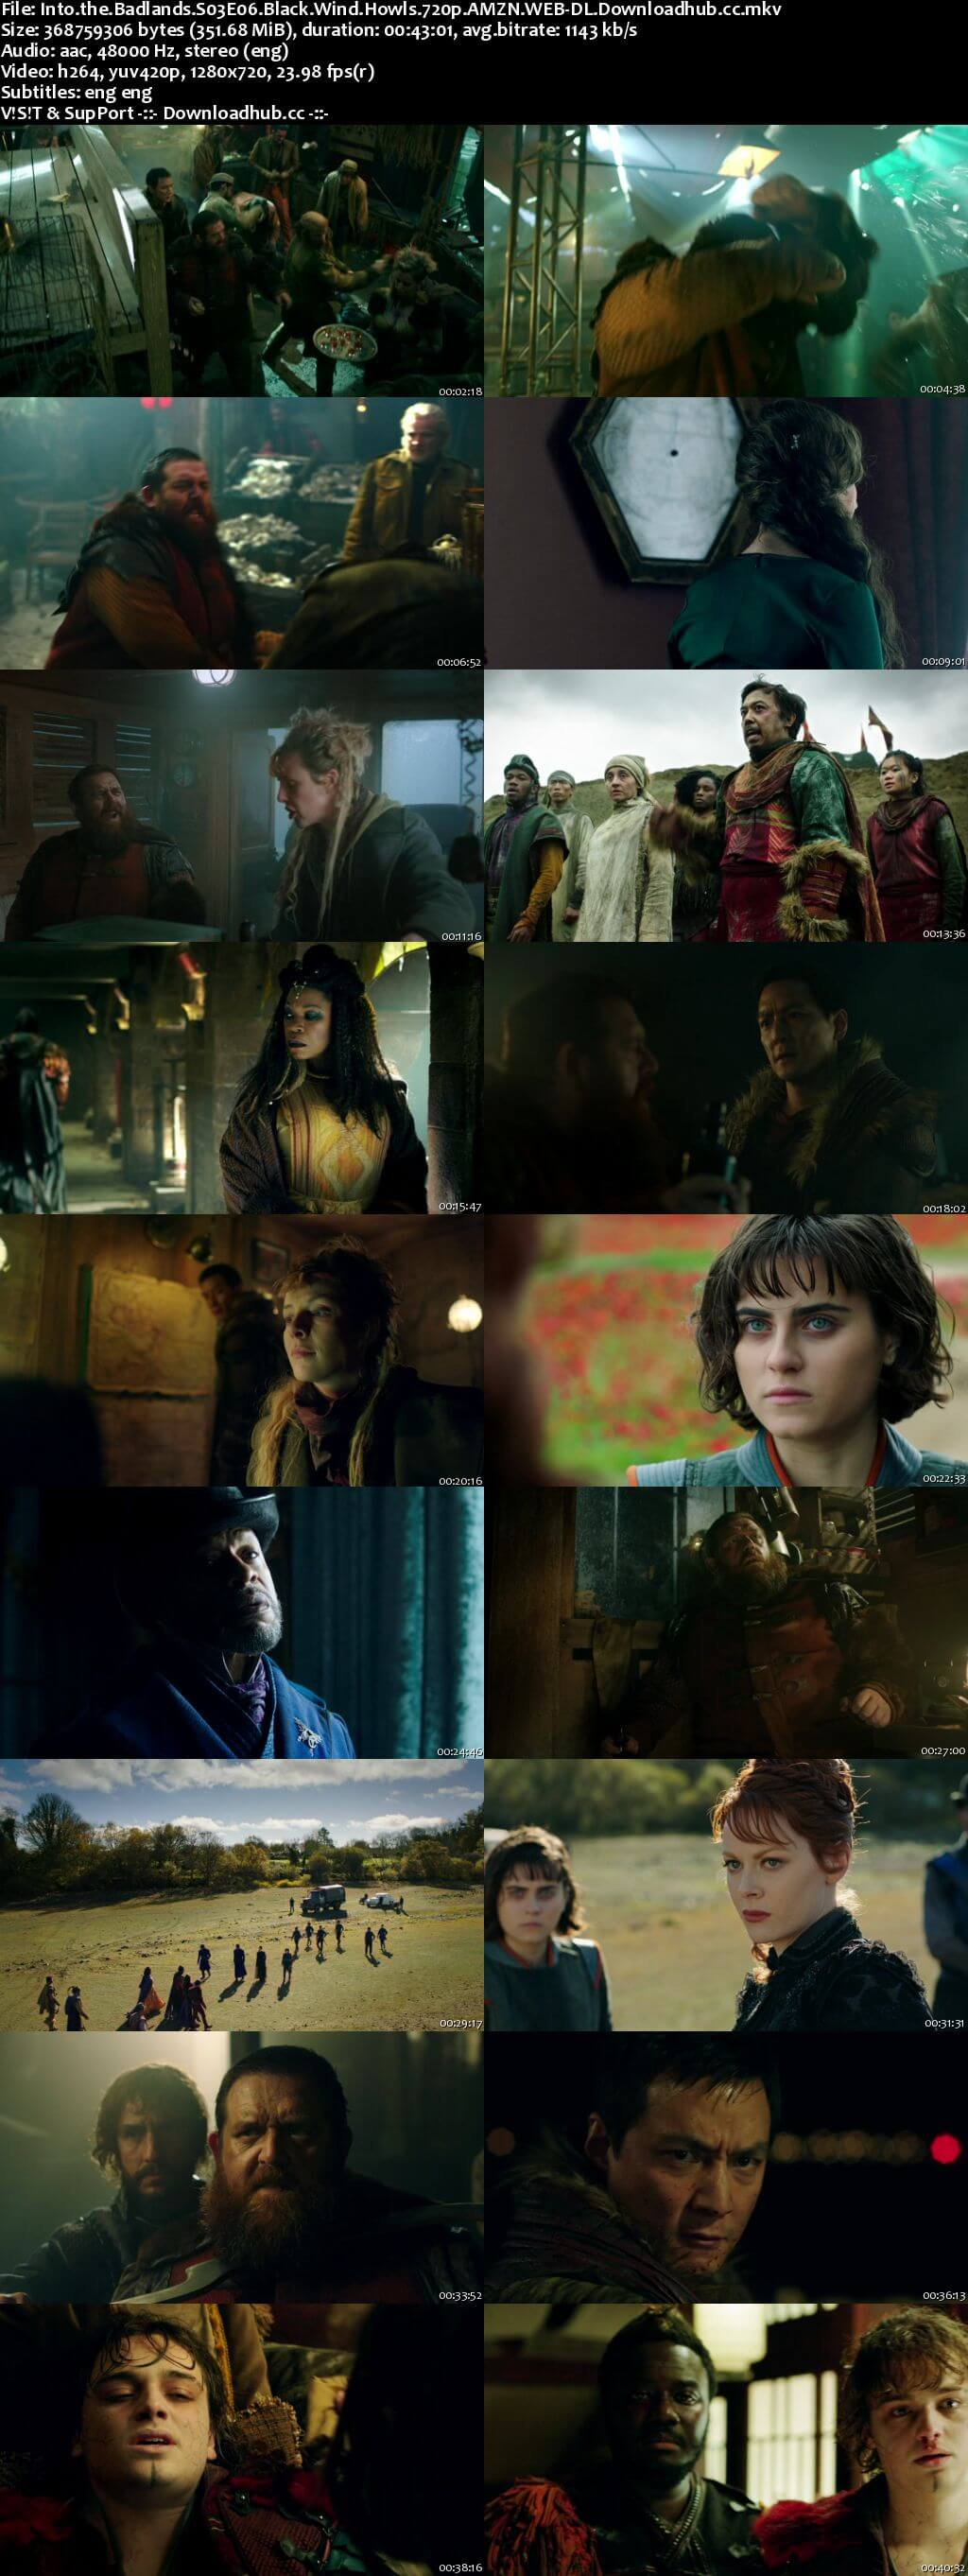 Into the Badlands S03E06 350MB WEB-DL 720p x264 ESubs